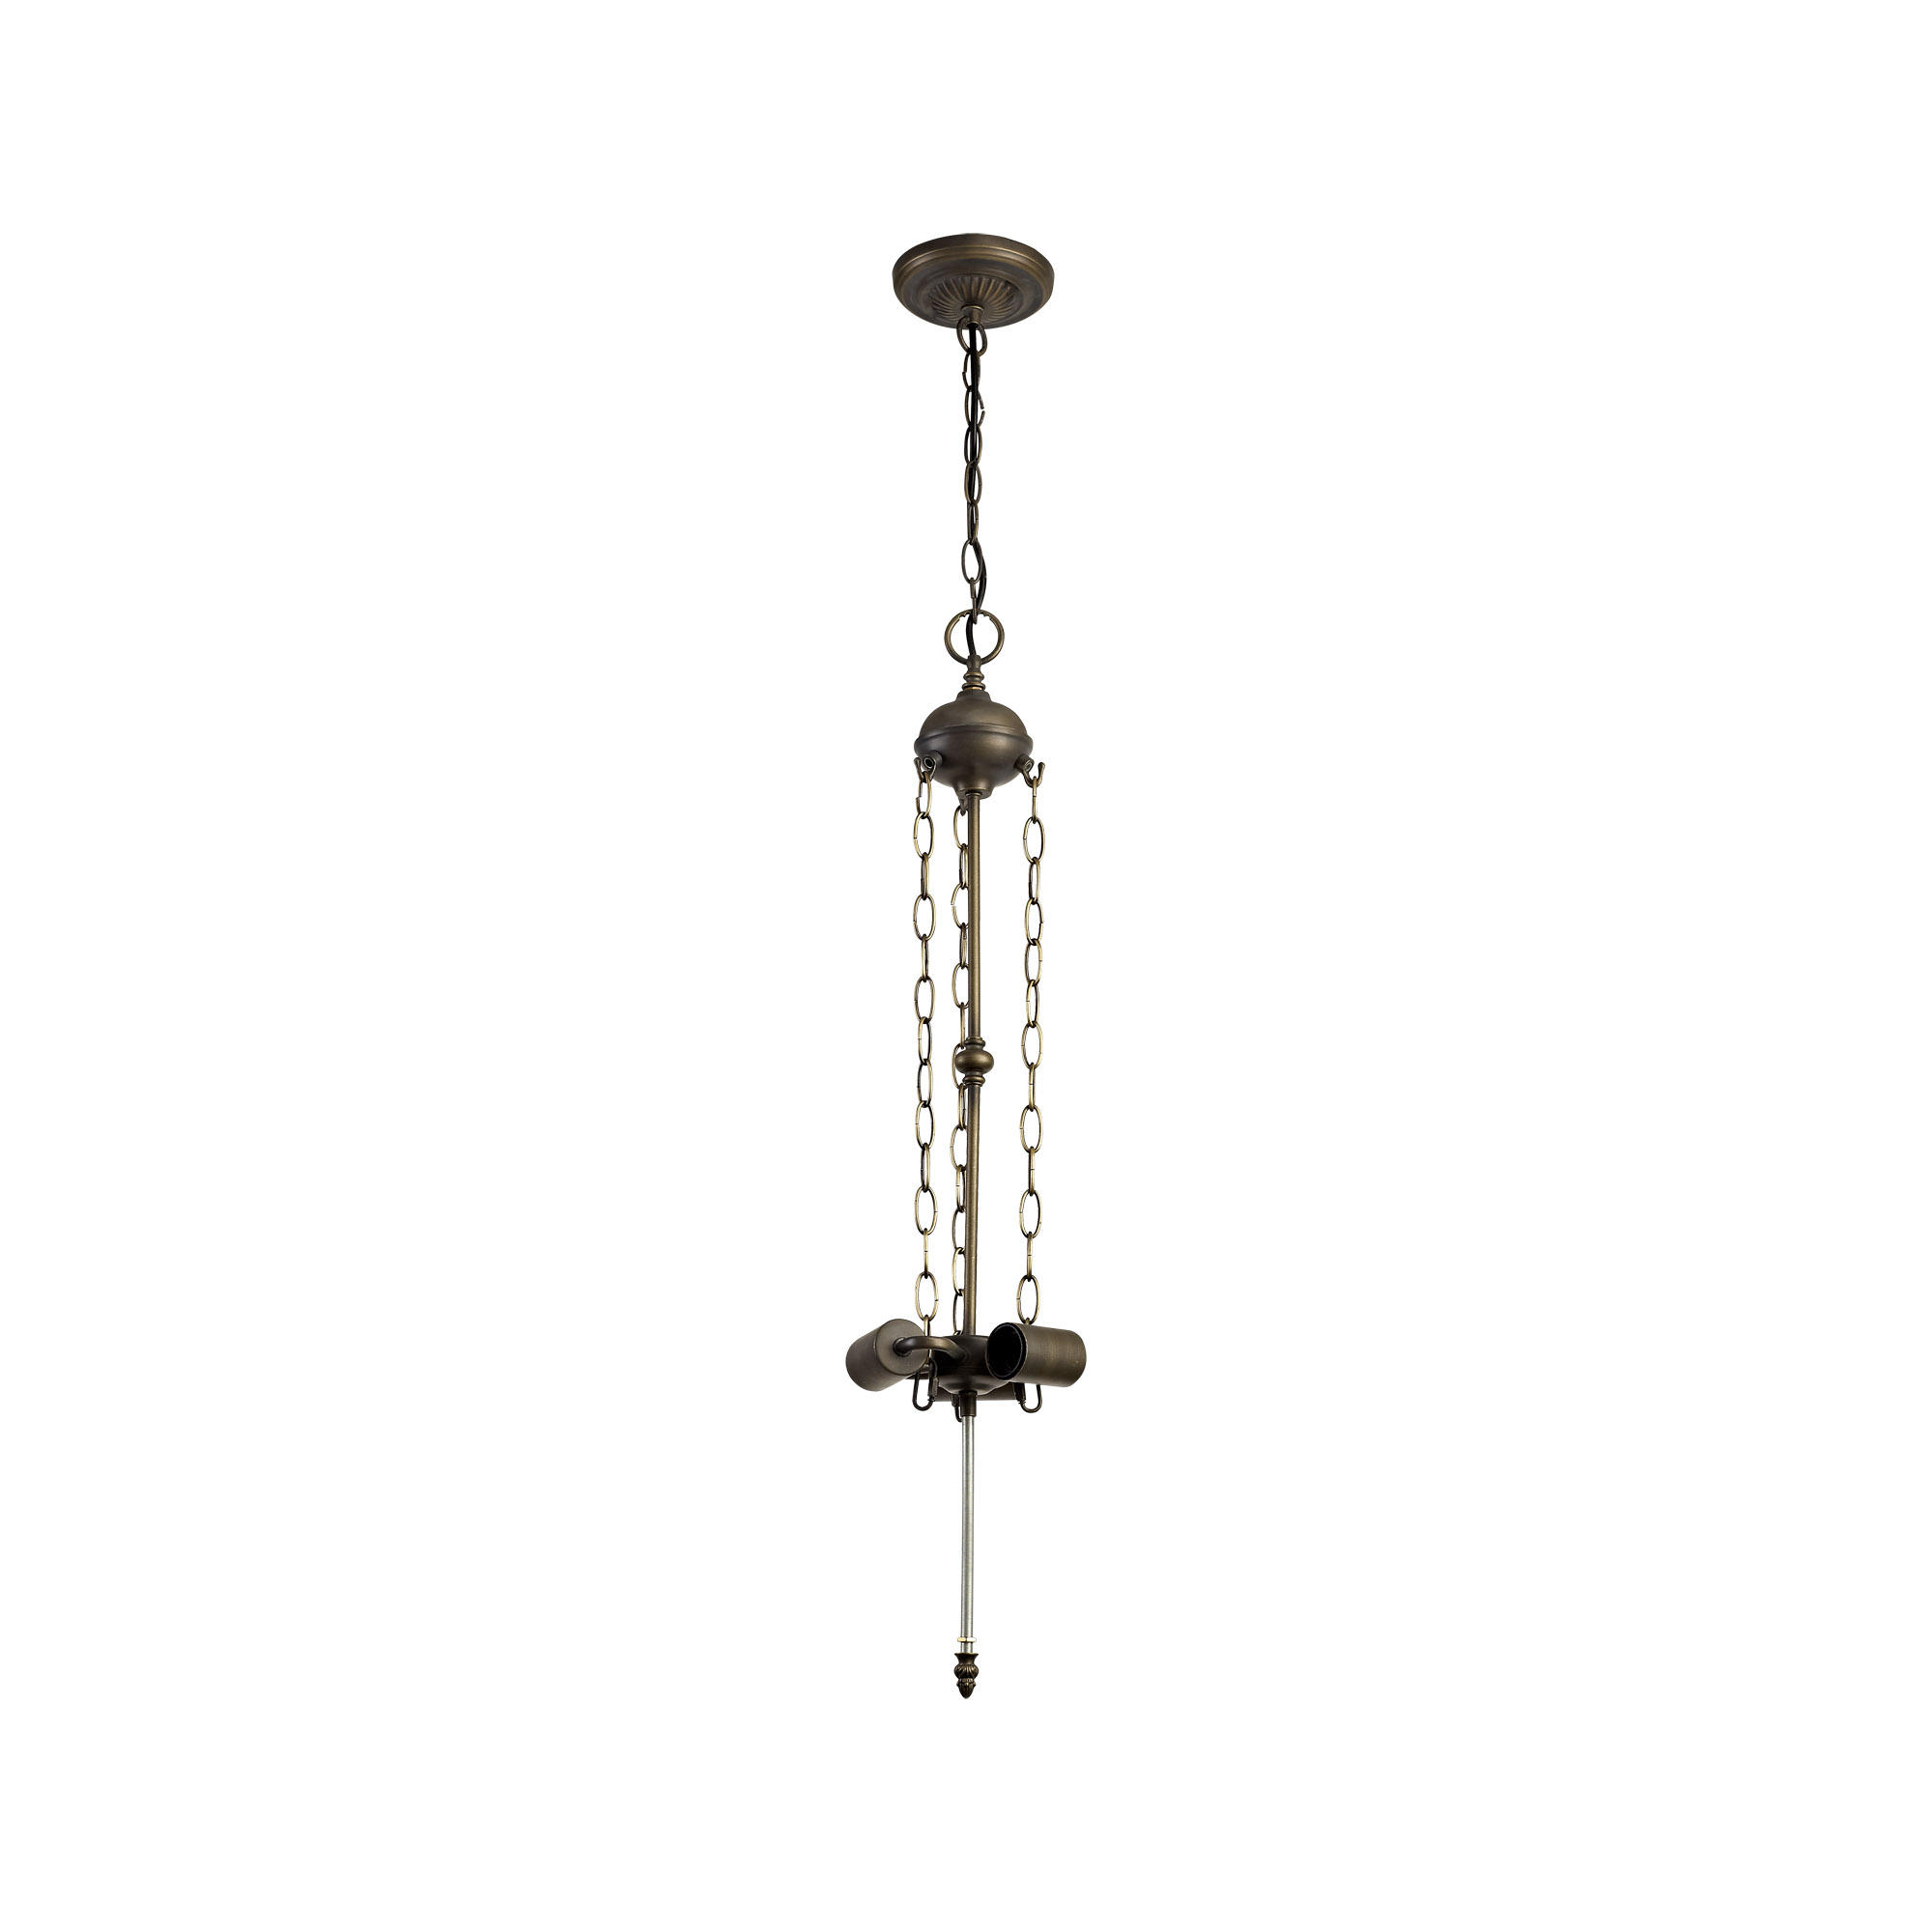 3 Light Uplighter Pendant E27 With 30cm Tiffany Shade, Blue/Clear Crystal/Aged Antique Brass